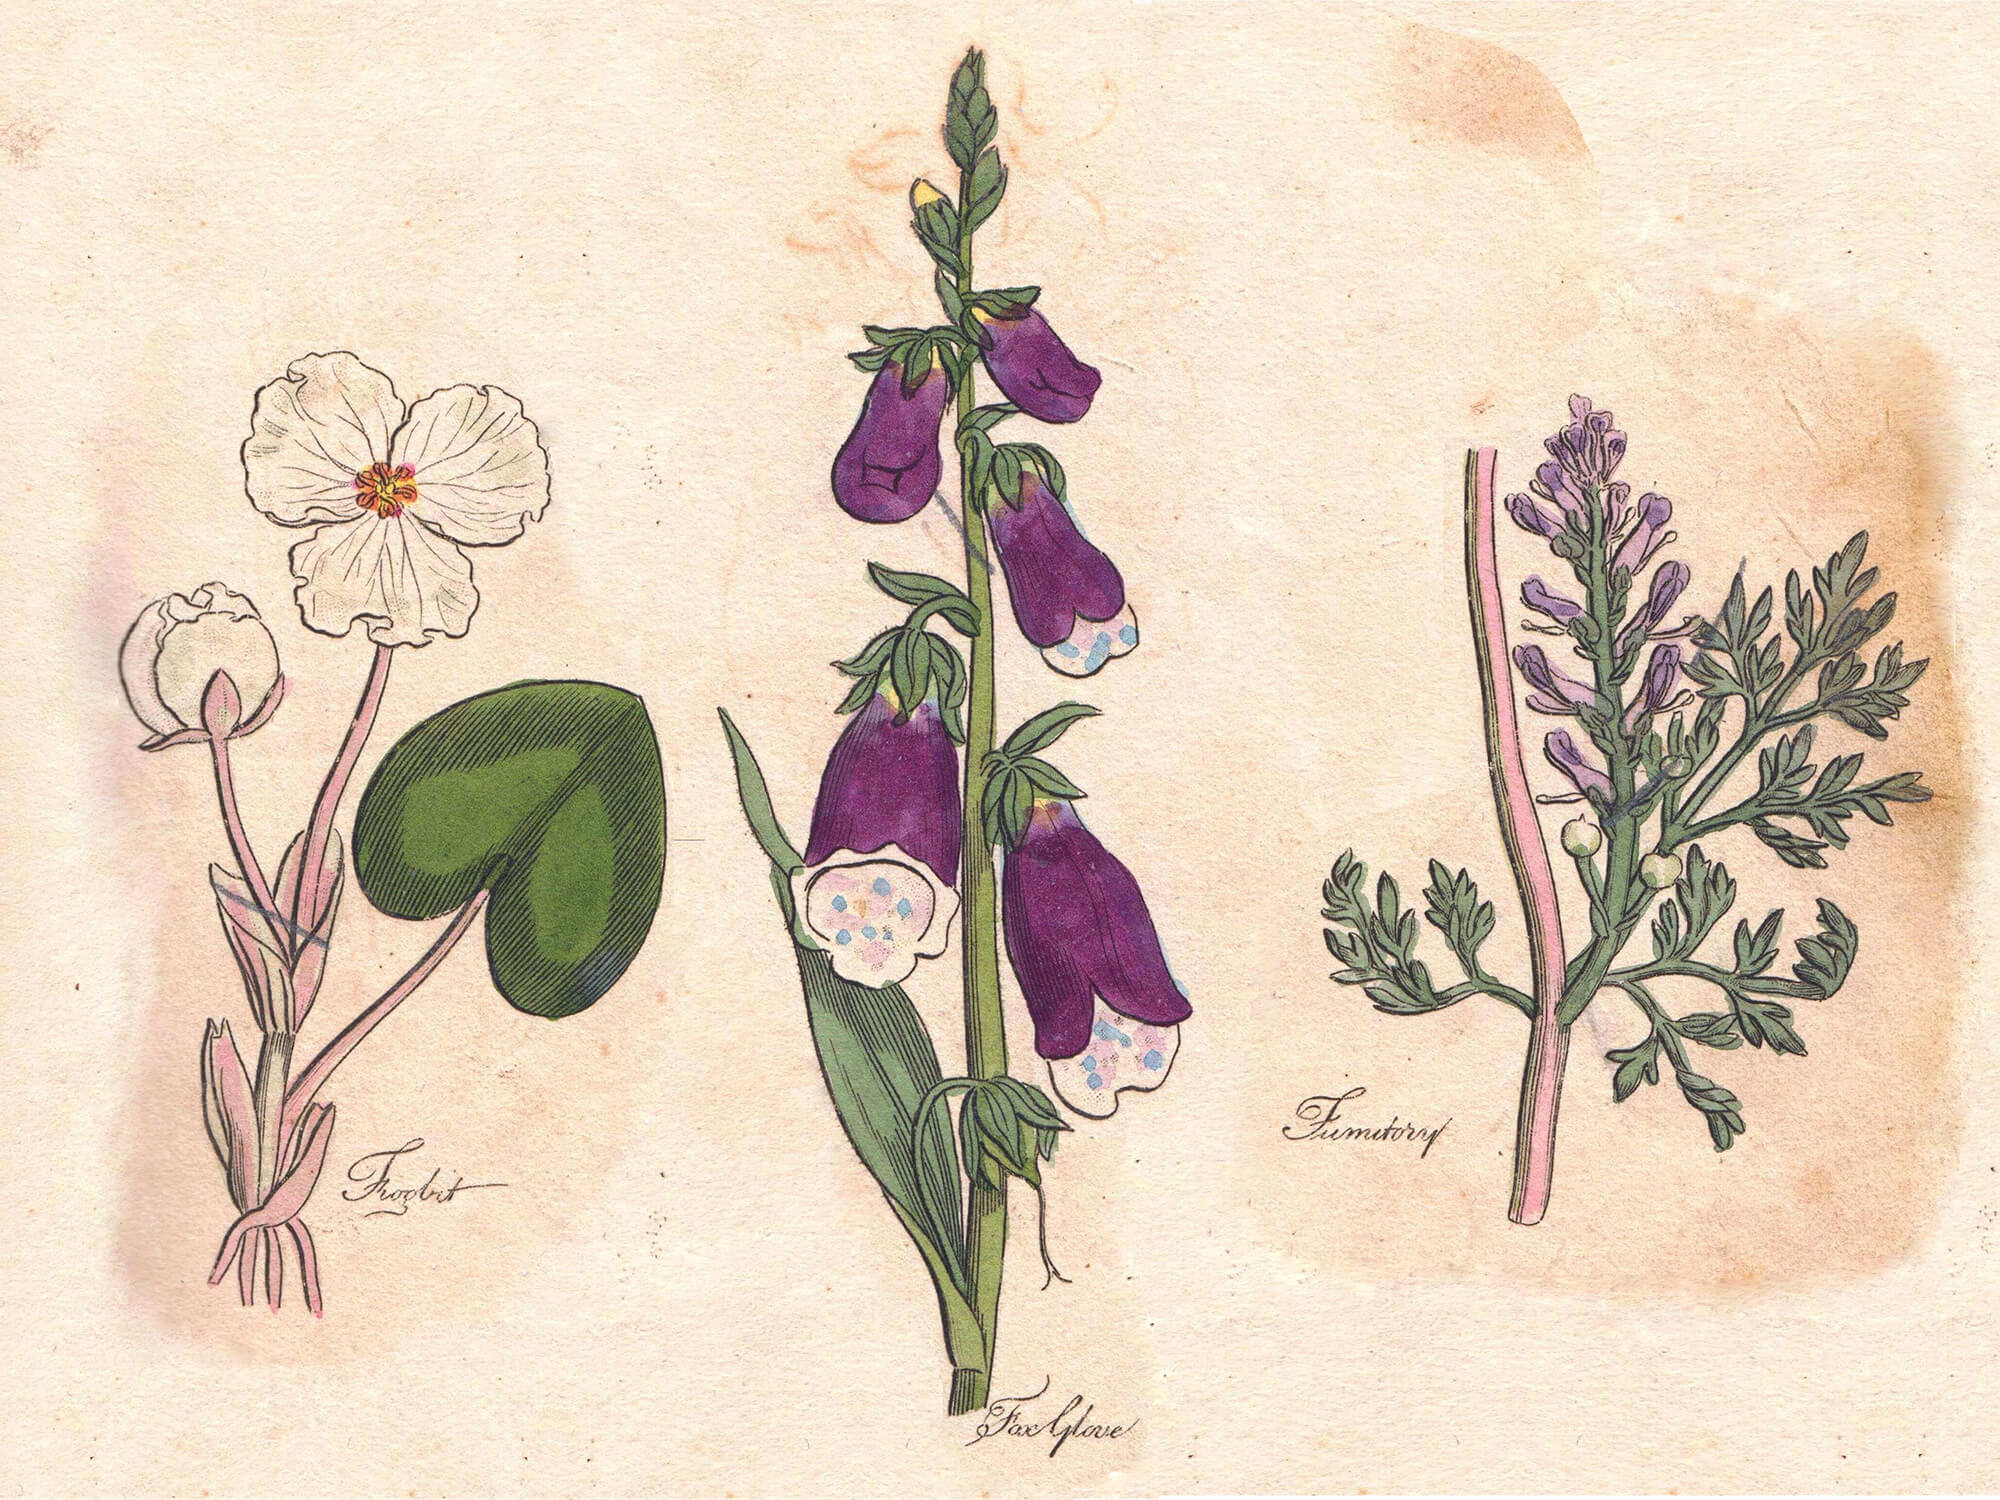 a sketch of a floxglove, frog bit and fumitory